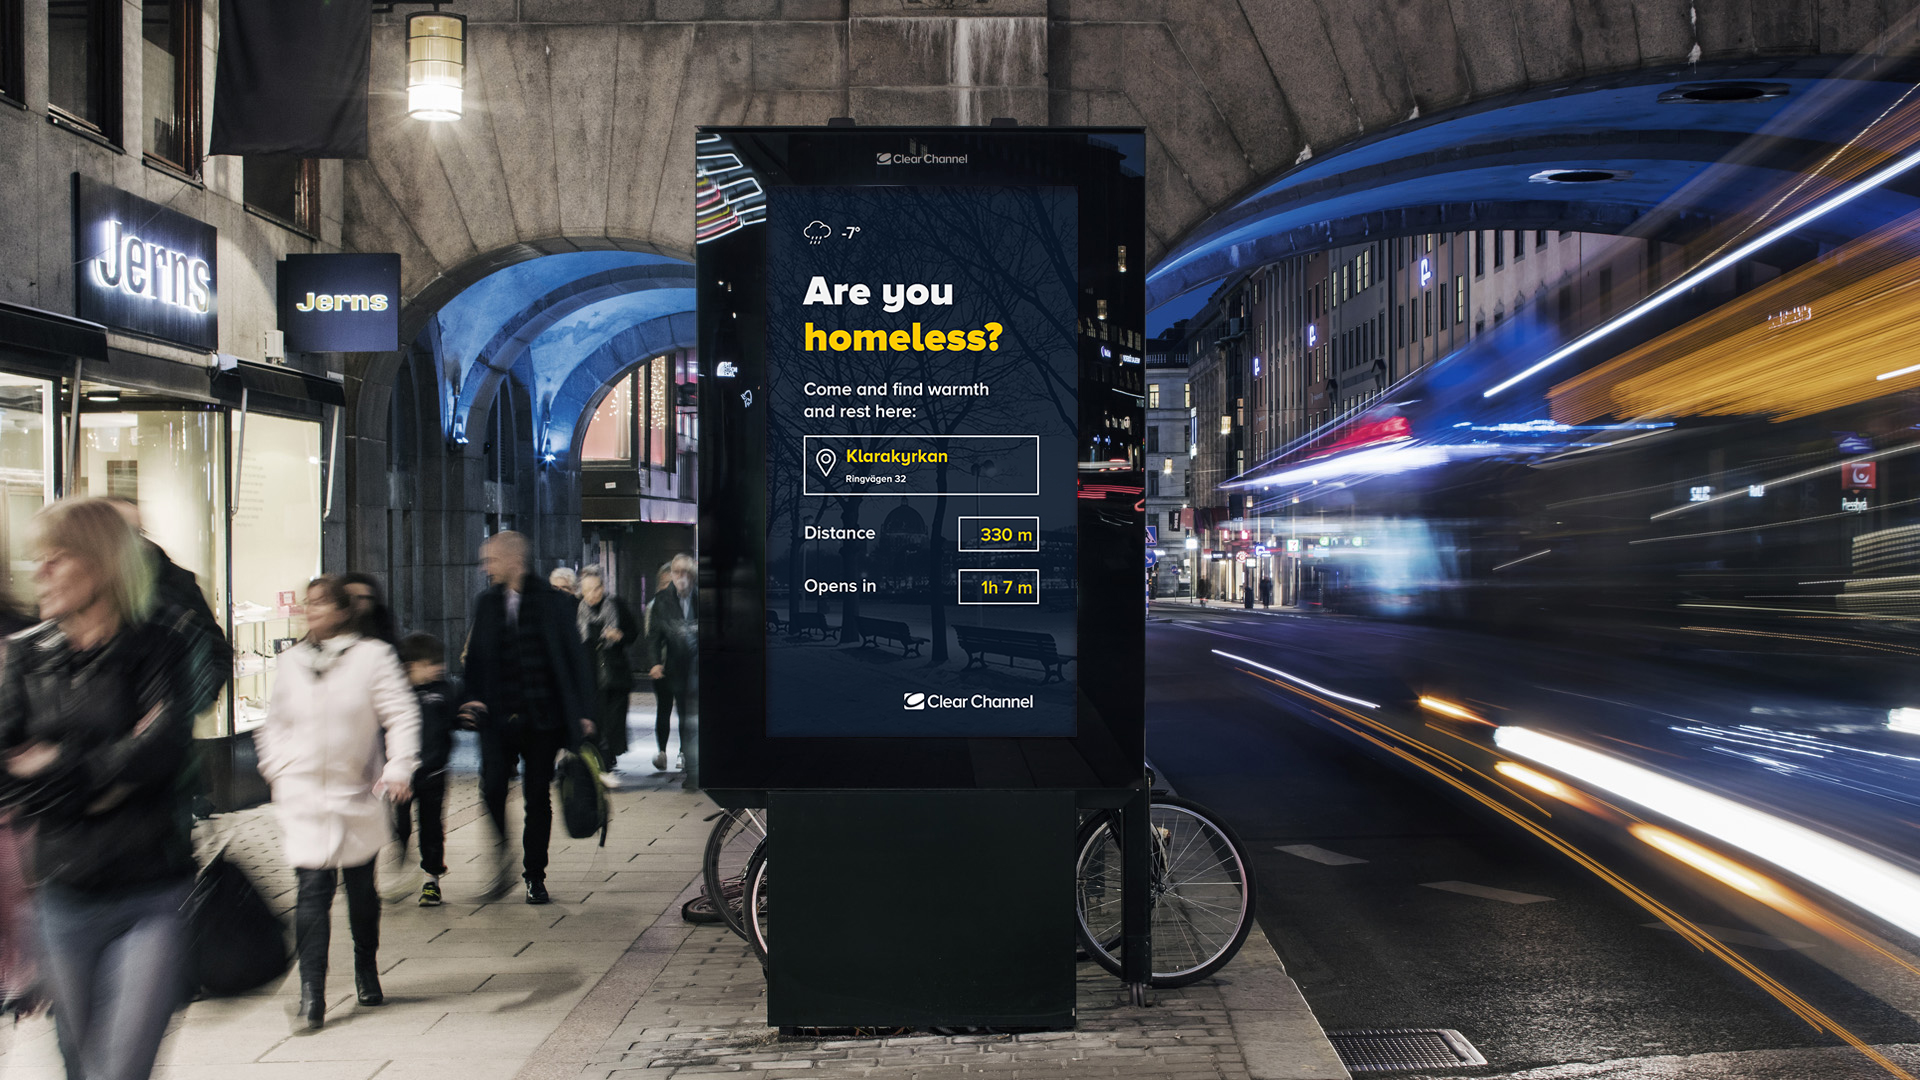 Clear Channel Donates Stockholm Out of Home Space to Help the Homeless this Christmas